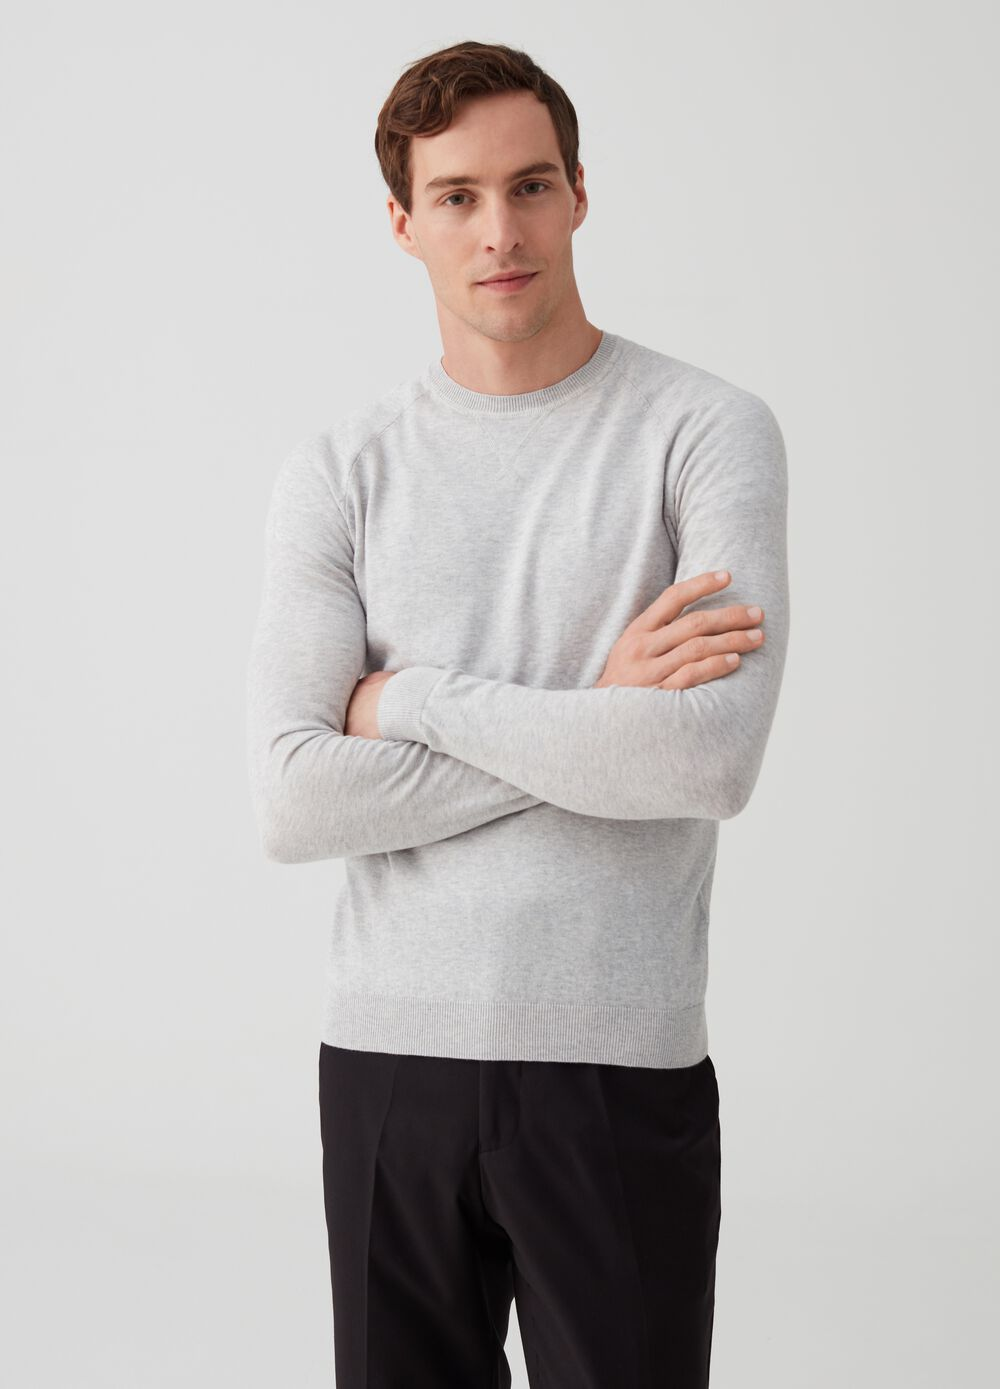 100% cotton pullover with neck detailing